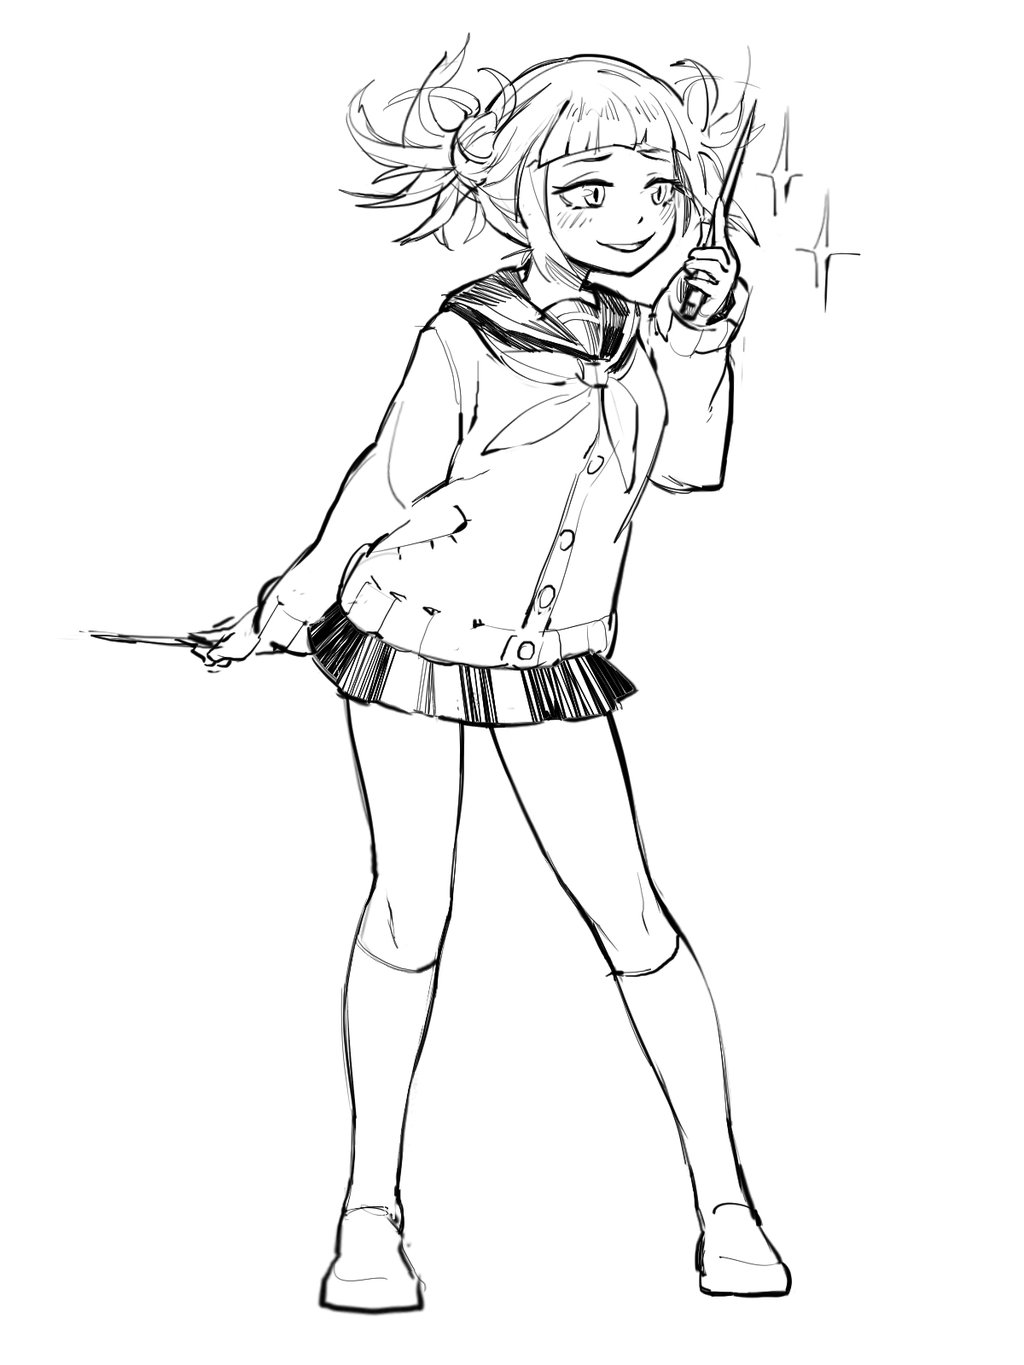 660 Top Anime Coloring Pages My Hero Academia Download Free Images